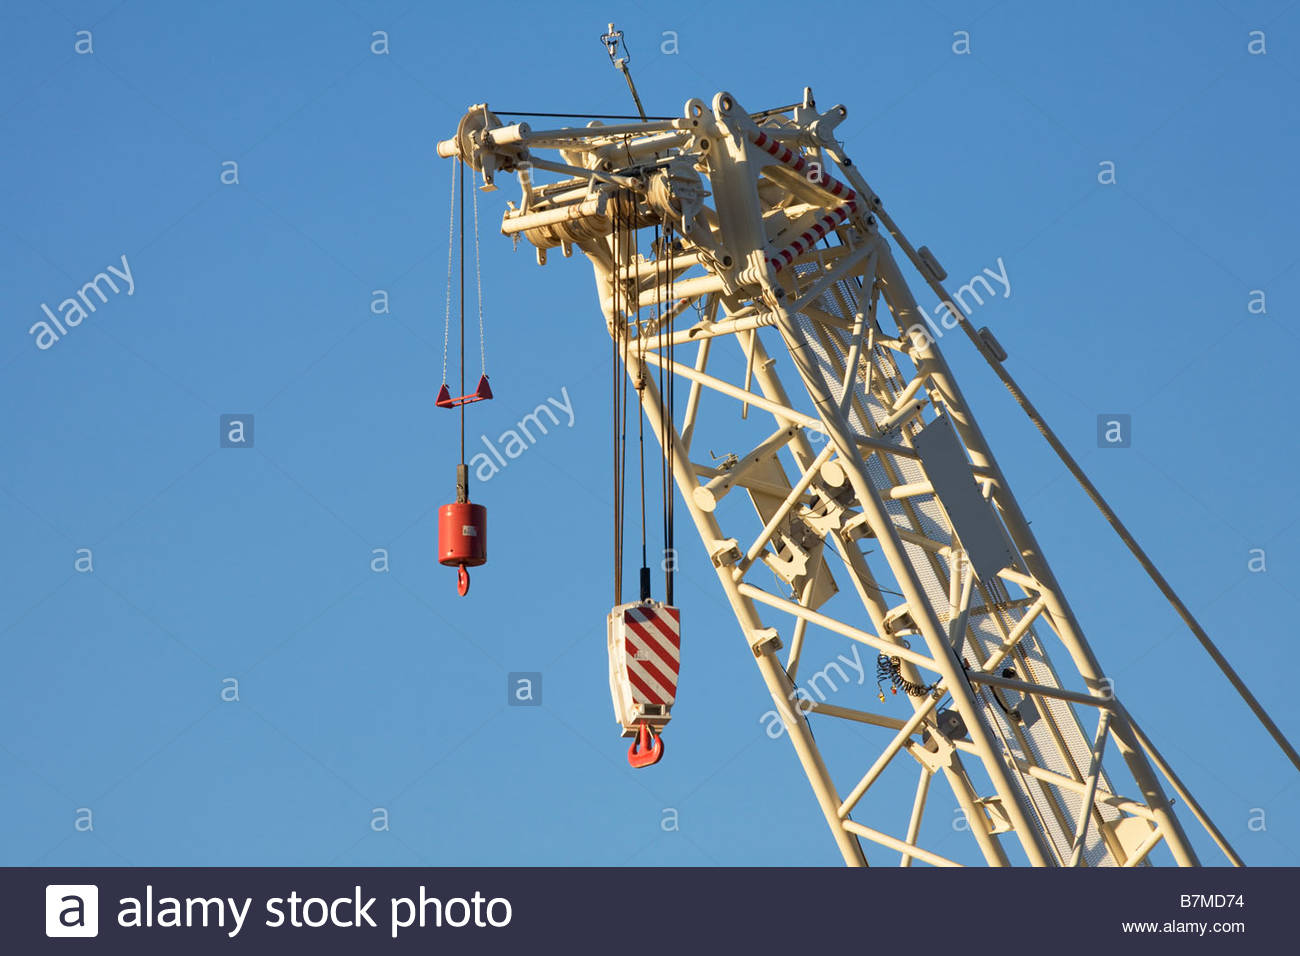 hight resolution of heavy crane hook block stock image